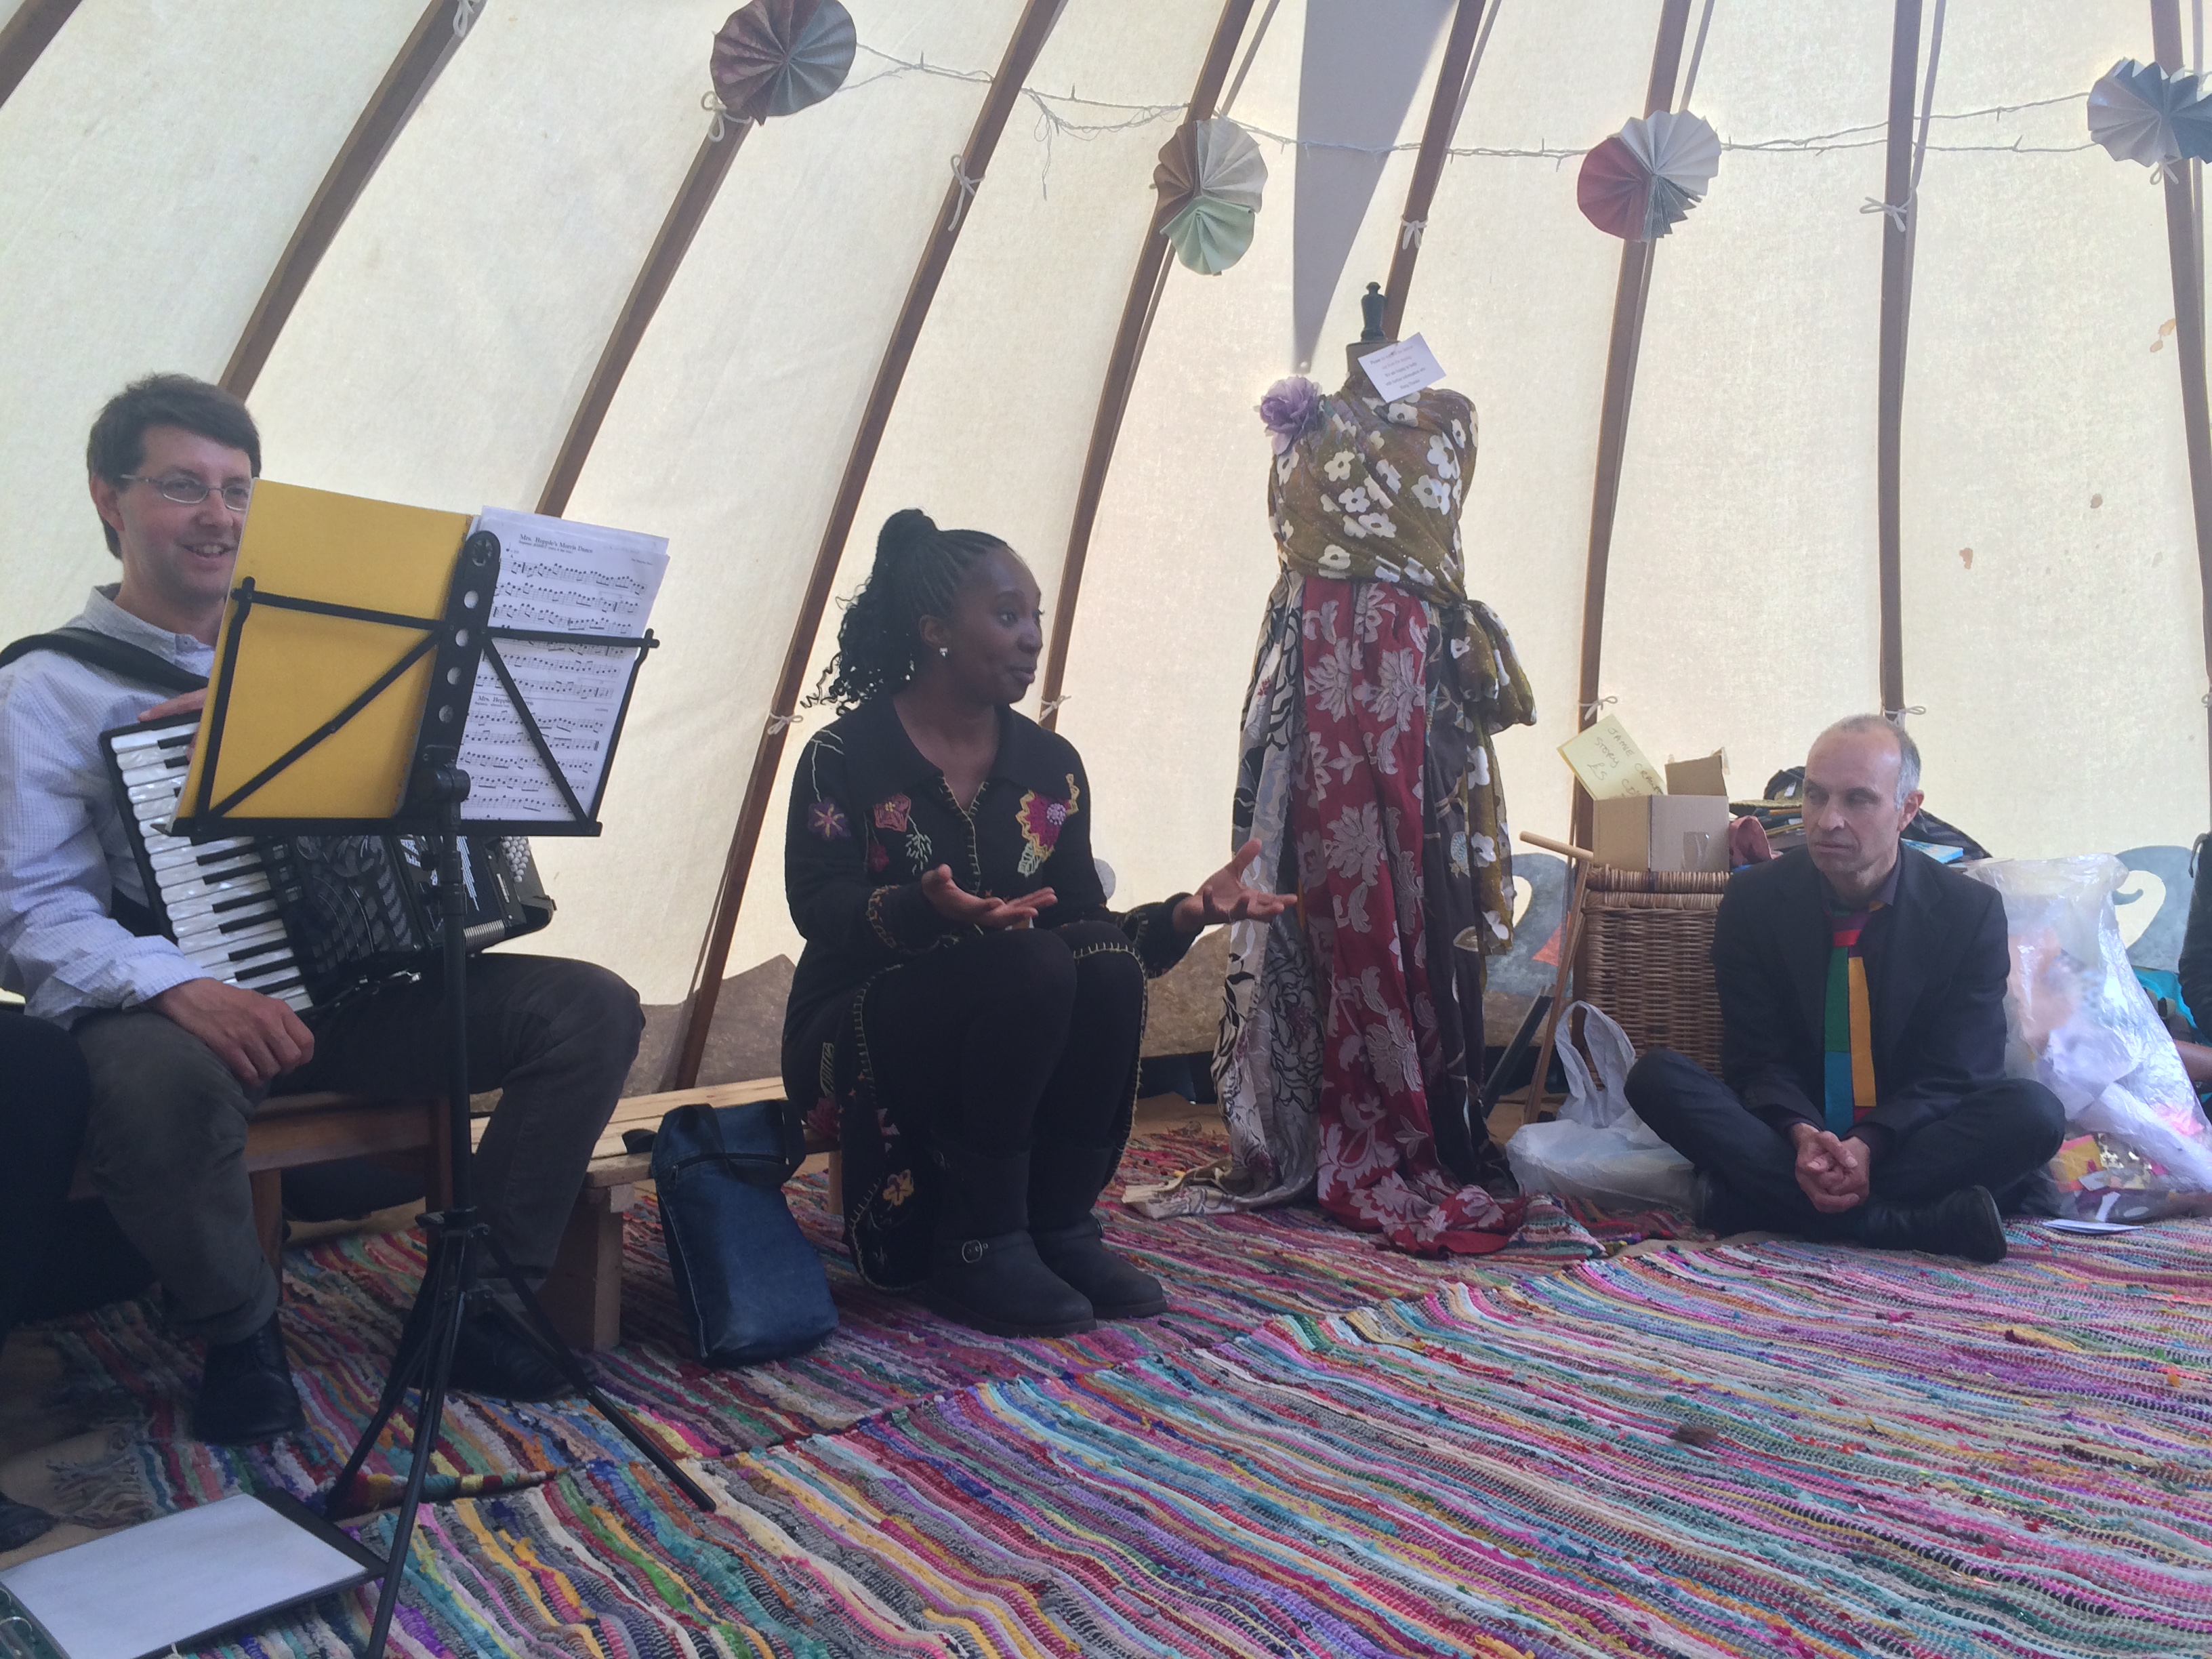 Wendy Shearer in the Storytelling Yurt, Tooting Bec Common, May 2015